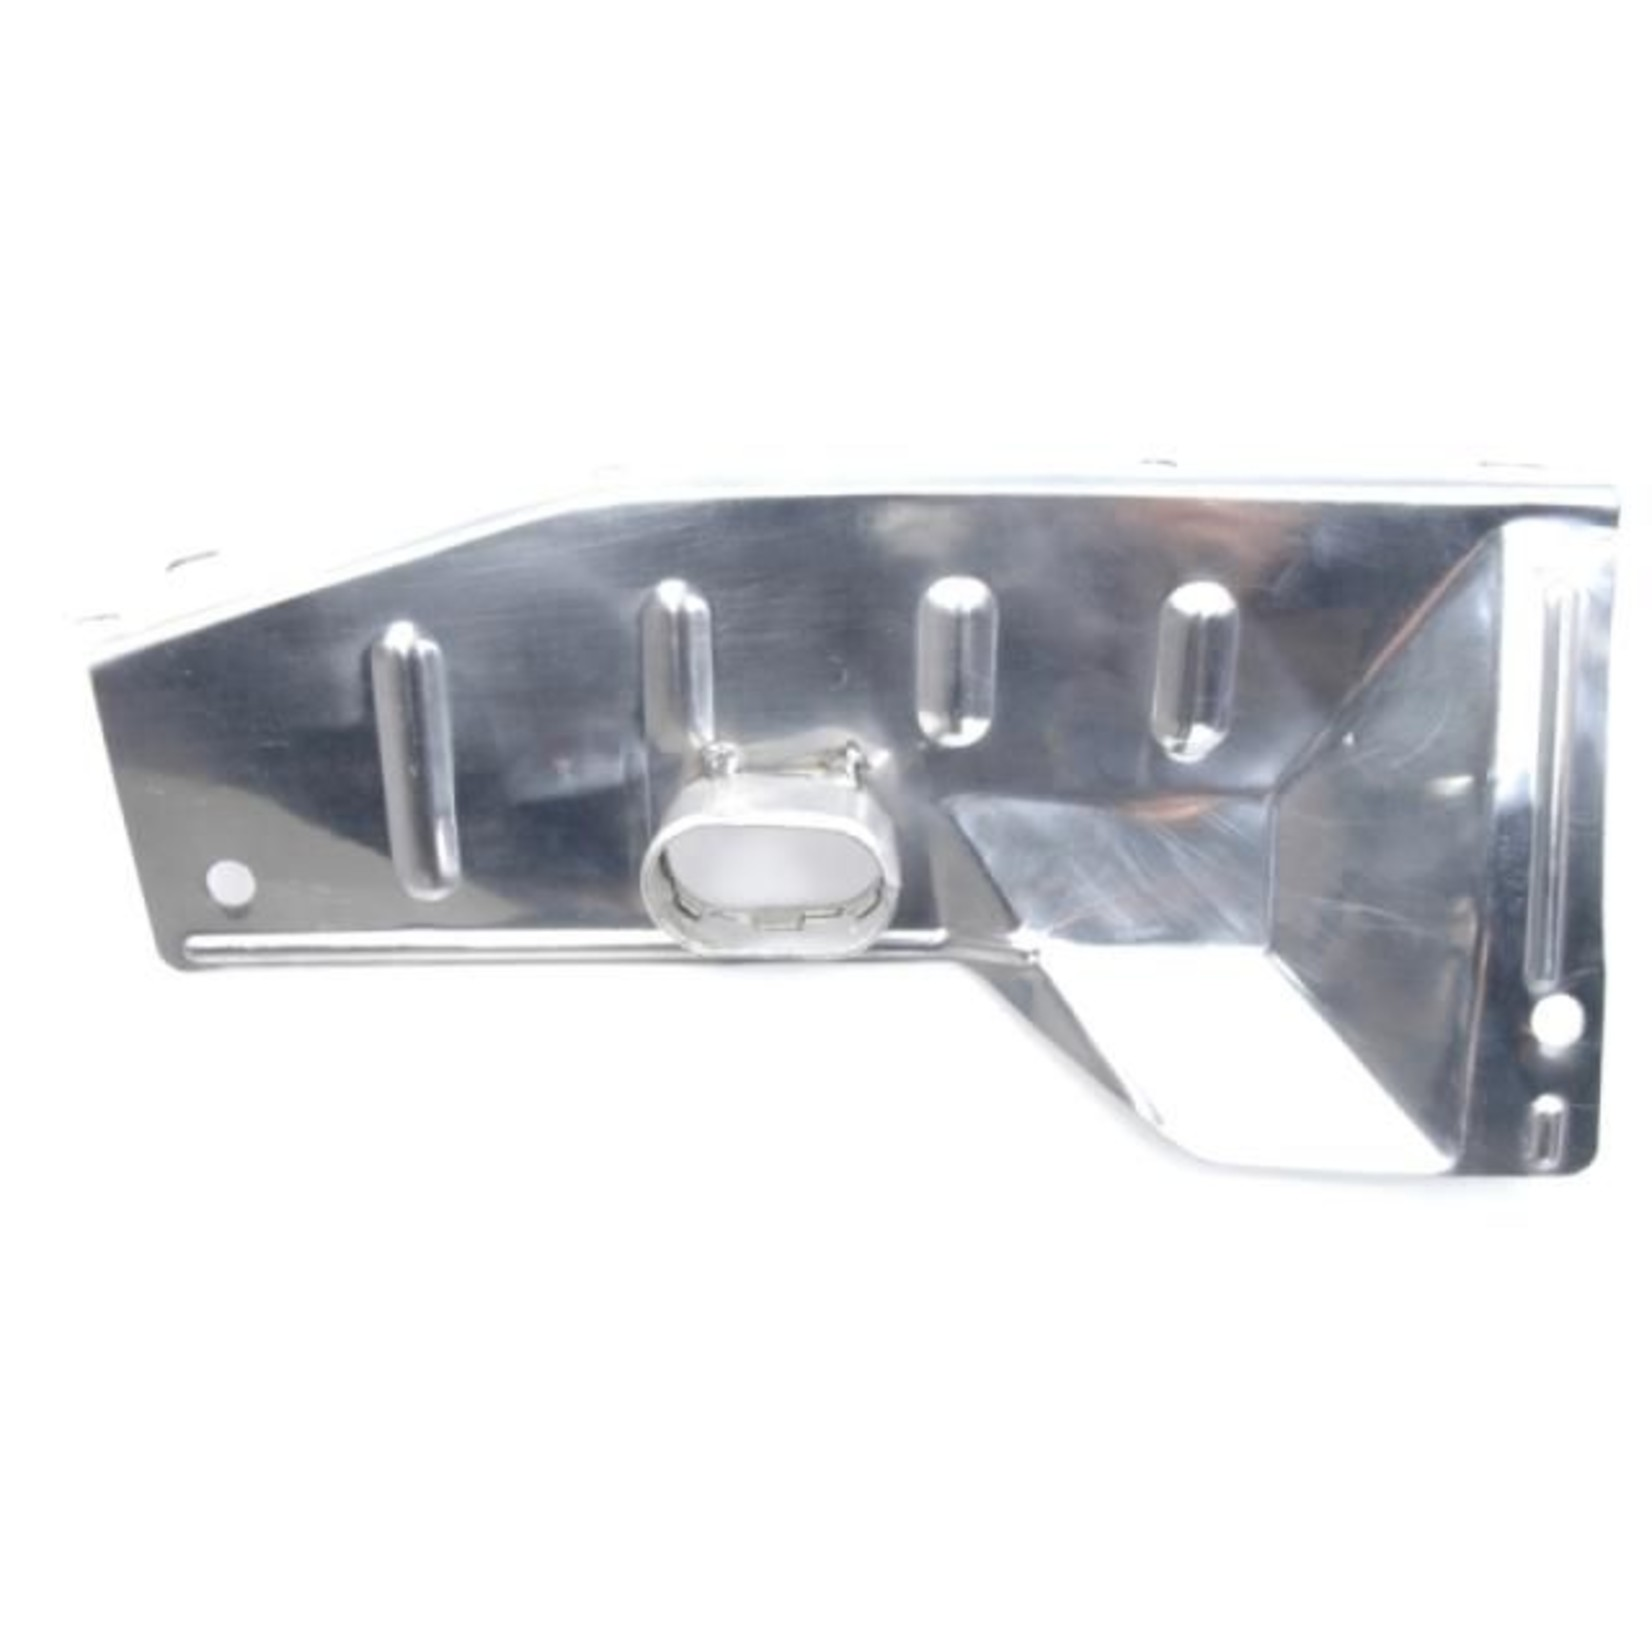 Shield support plate exterior with channel 72- Nr Org: DX181216A